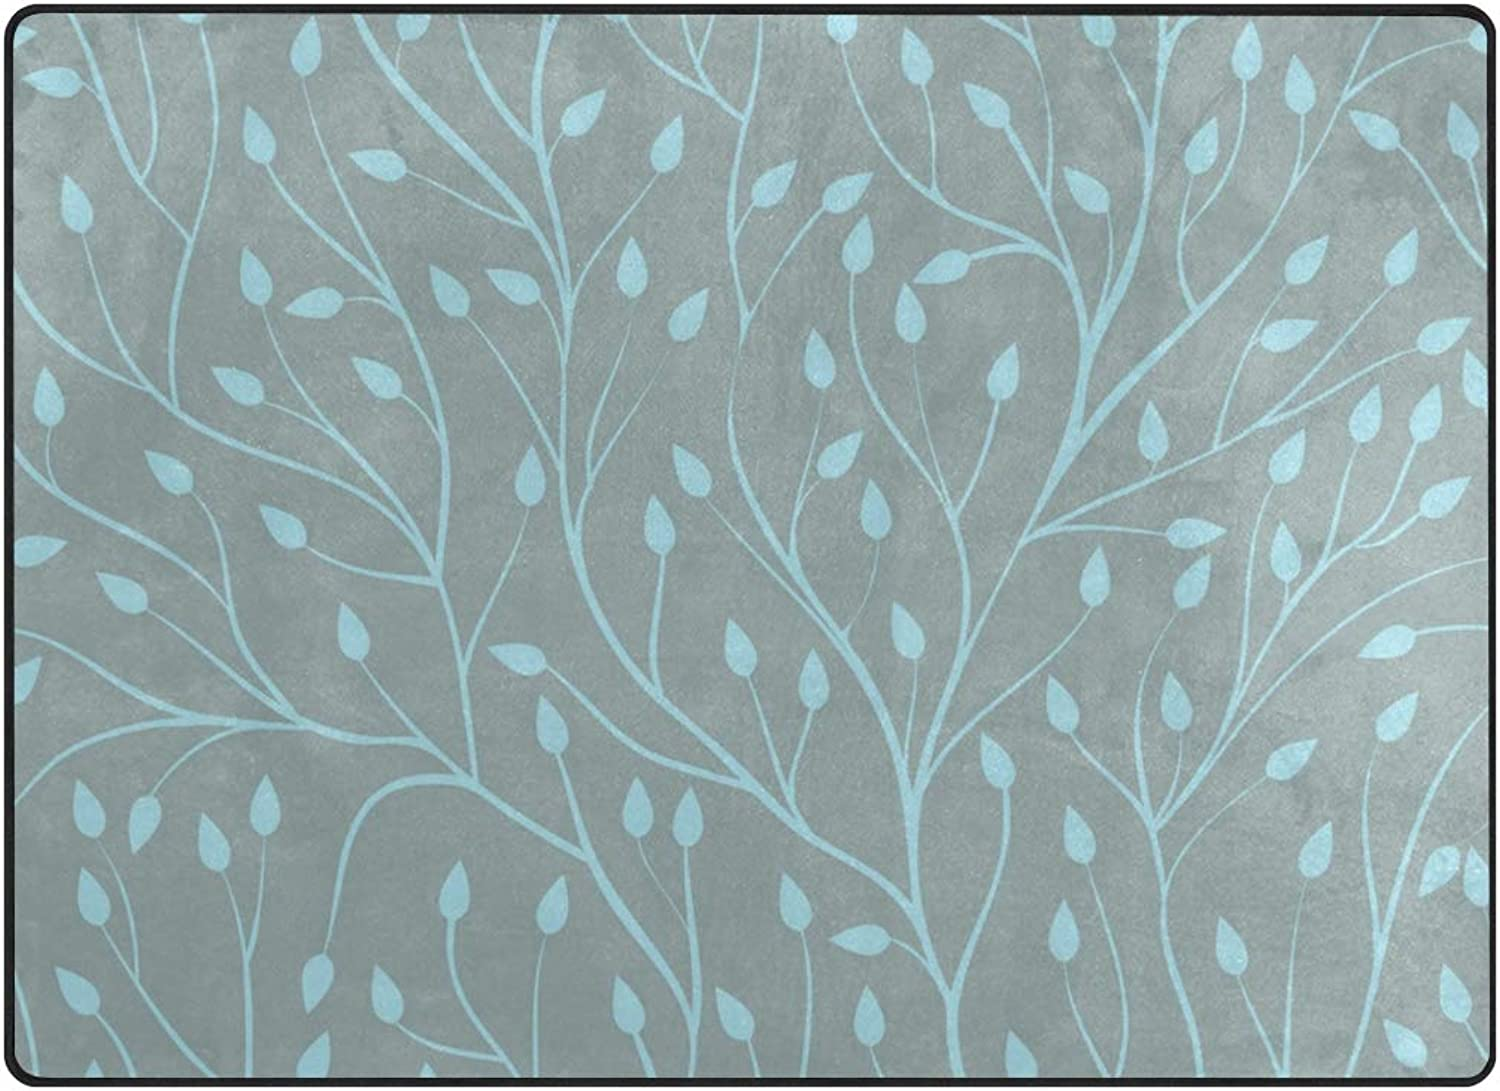 SUABO 80 x 58 inches Area Rug Non-Slip Floor Mat Tree Branches Printed Doormats Living Room Bedroom